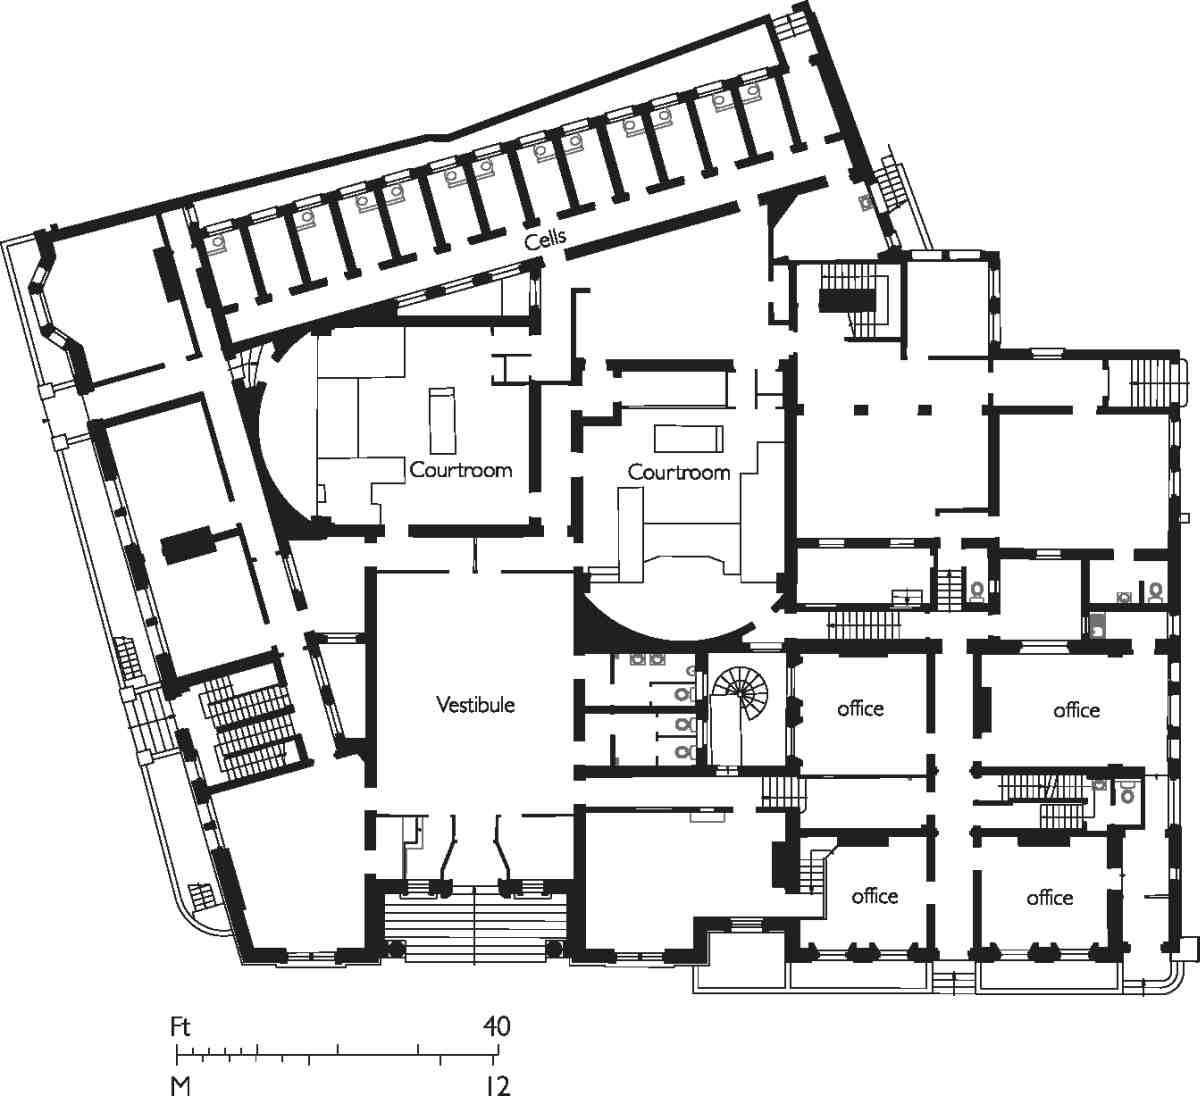 King 39 s cross road and penton rise area british history for 125 court street floor plans